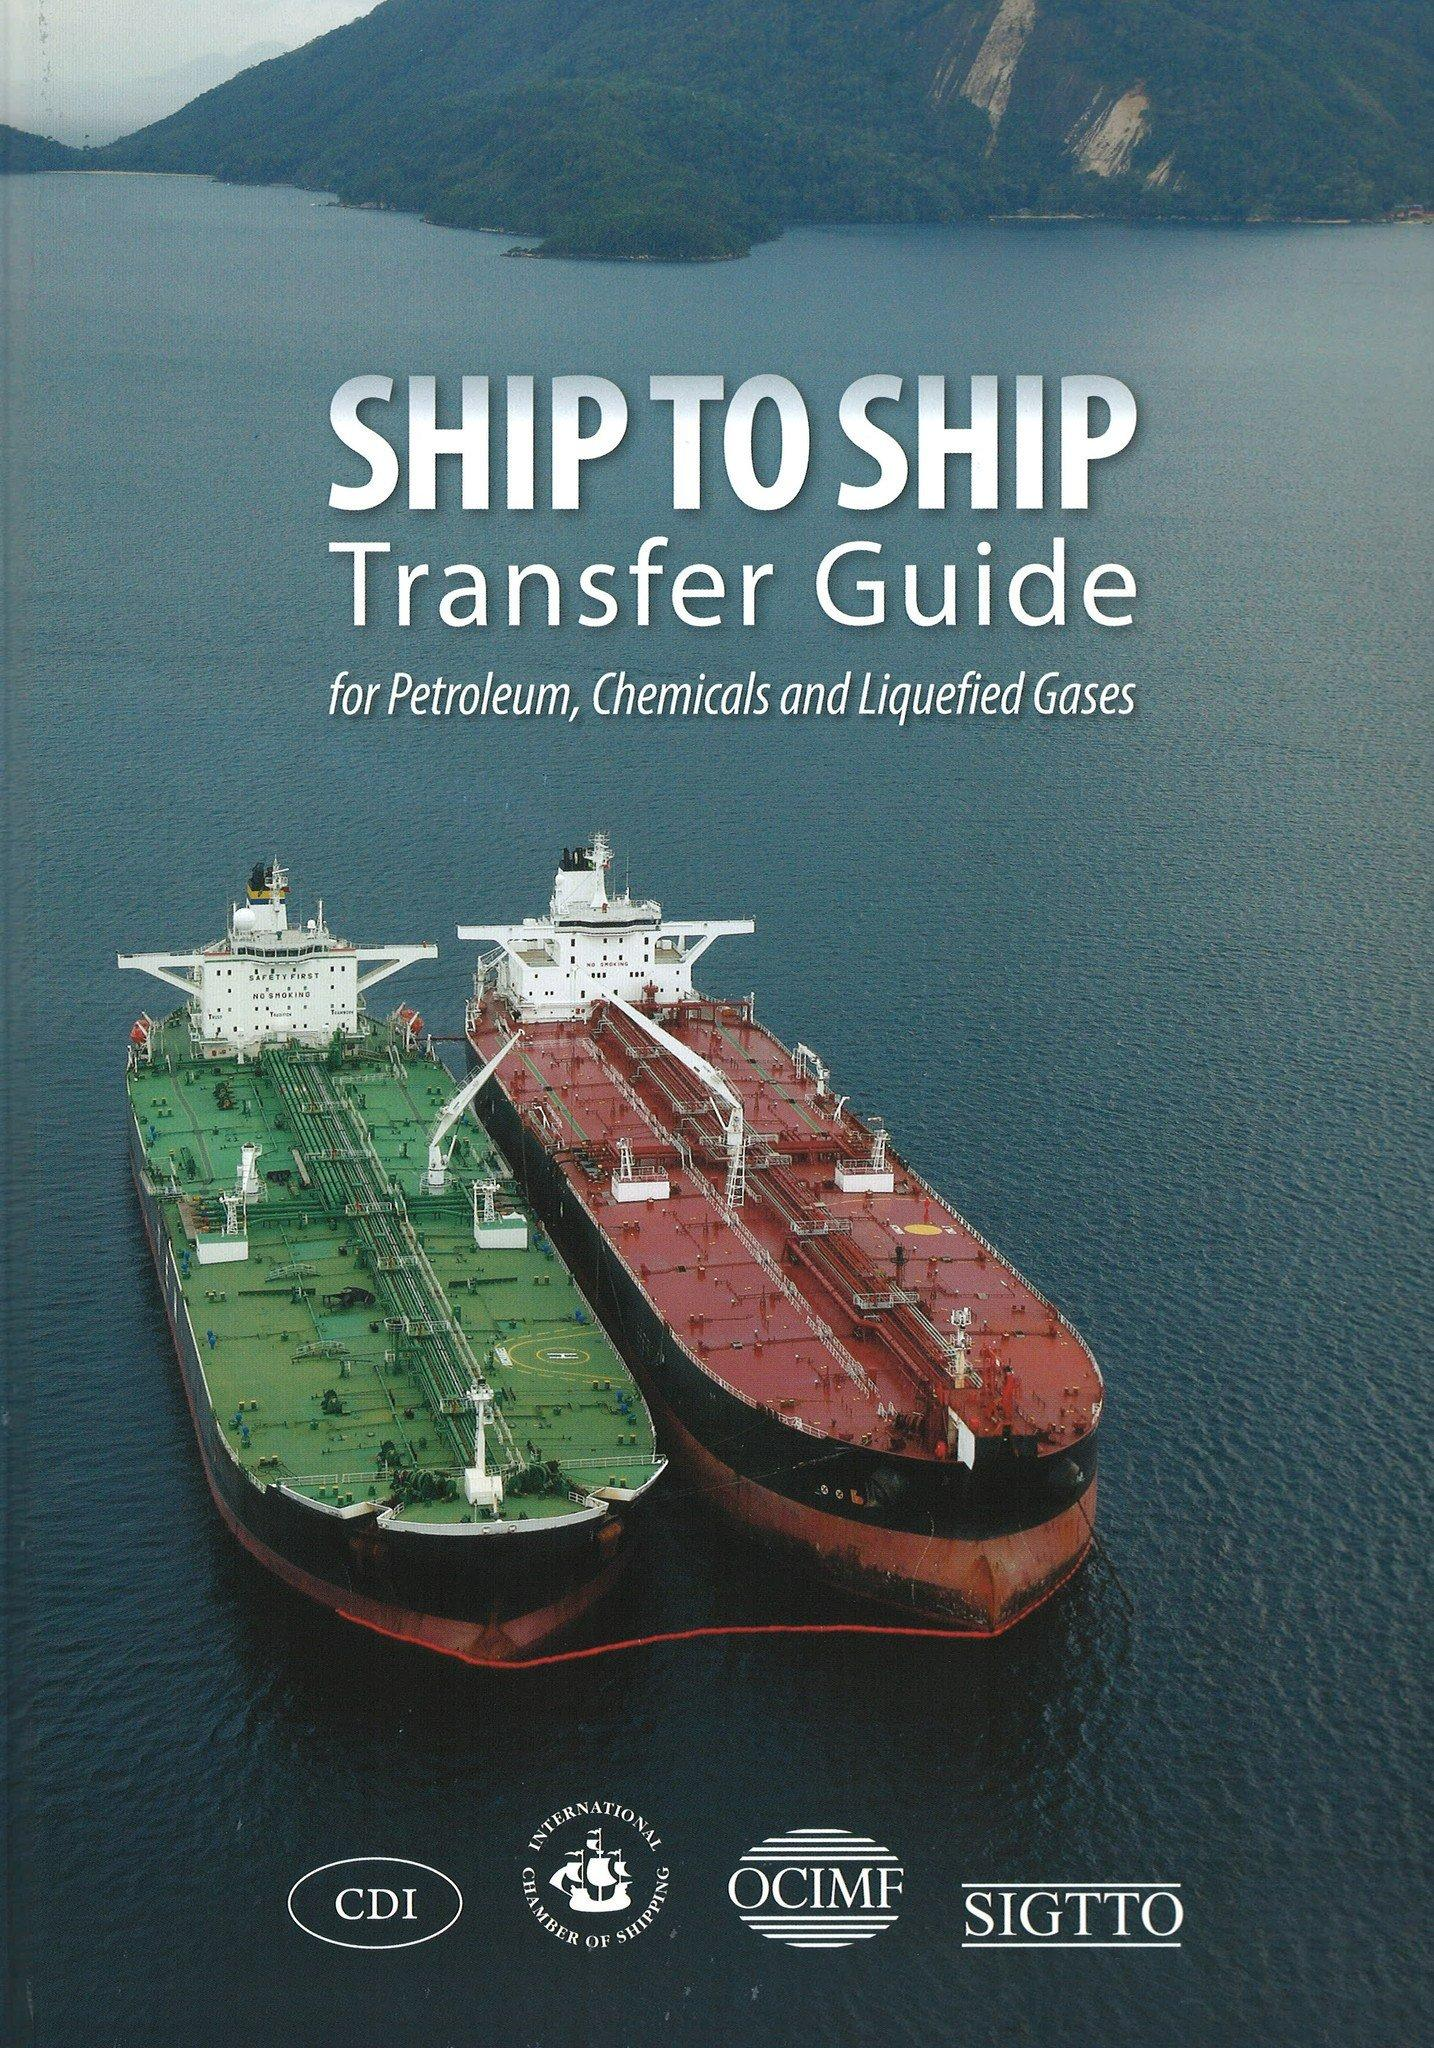 Ship to Ship Transfer Guide for Petroleum, Chemicals and Liquefied Gases Book - Witherby